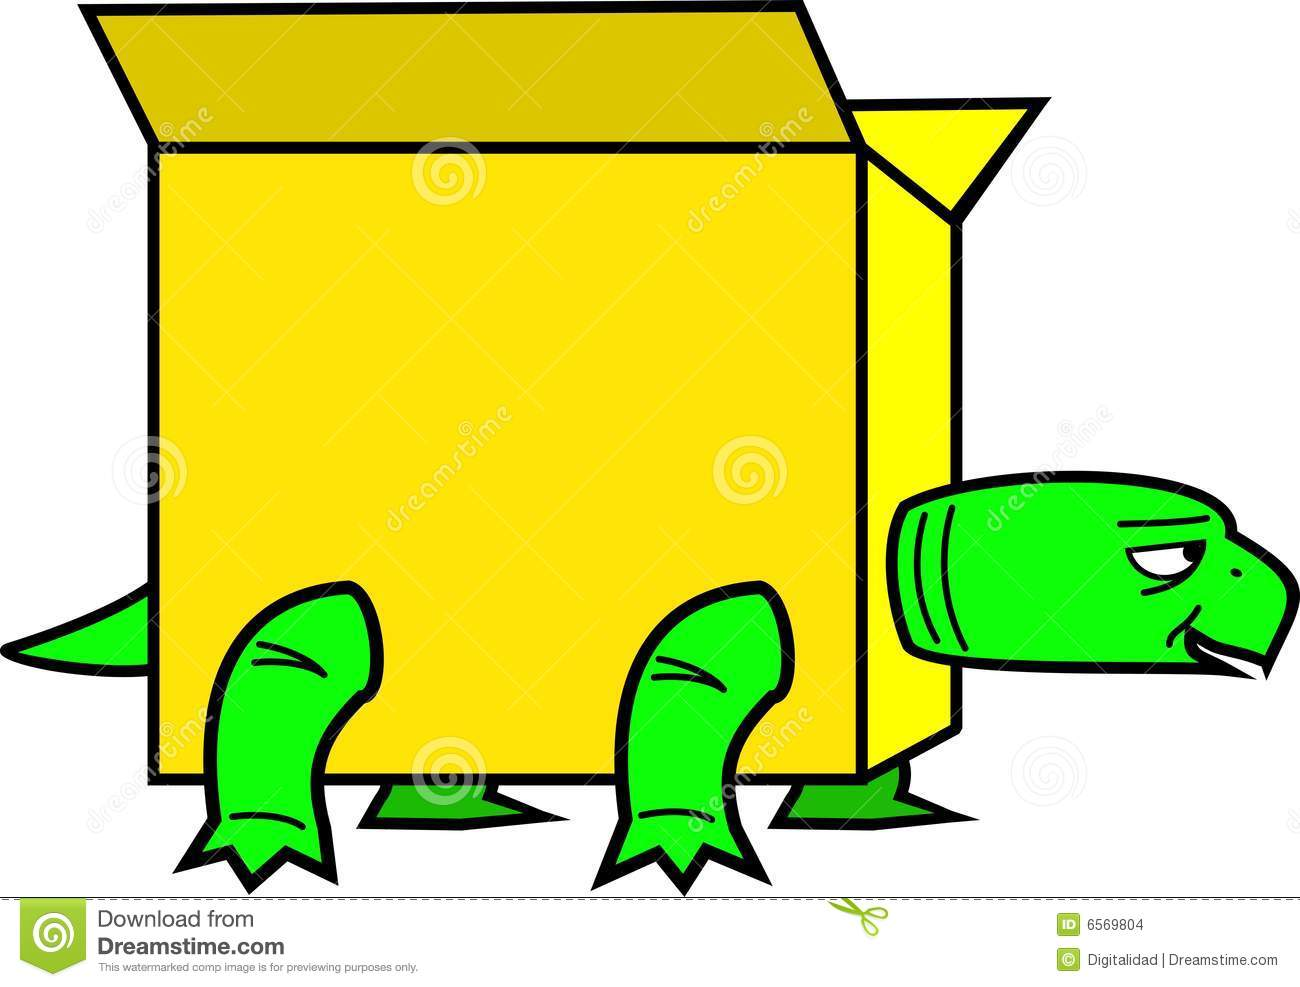 Slow moving item stock images image 6569804 for Moving items into place